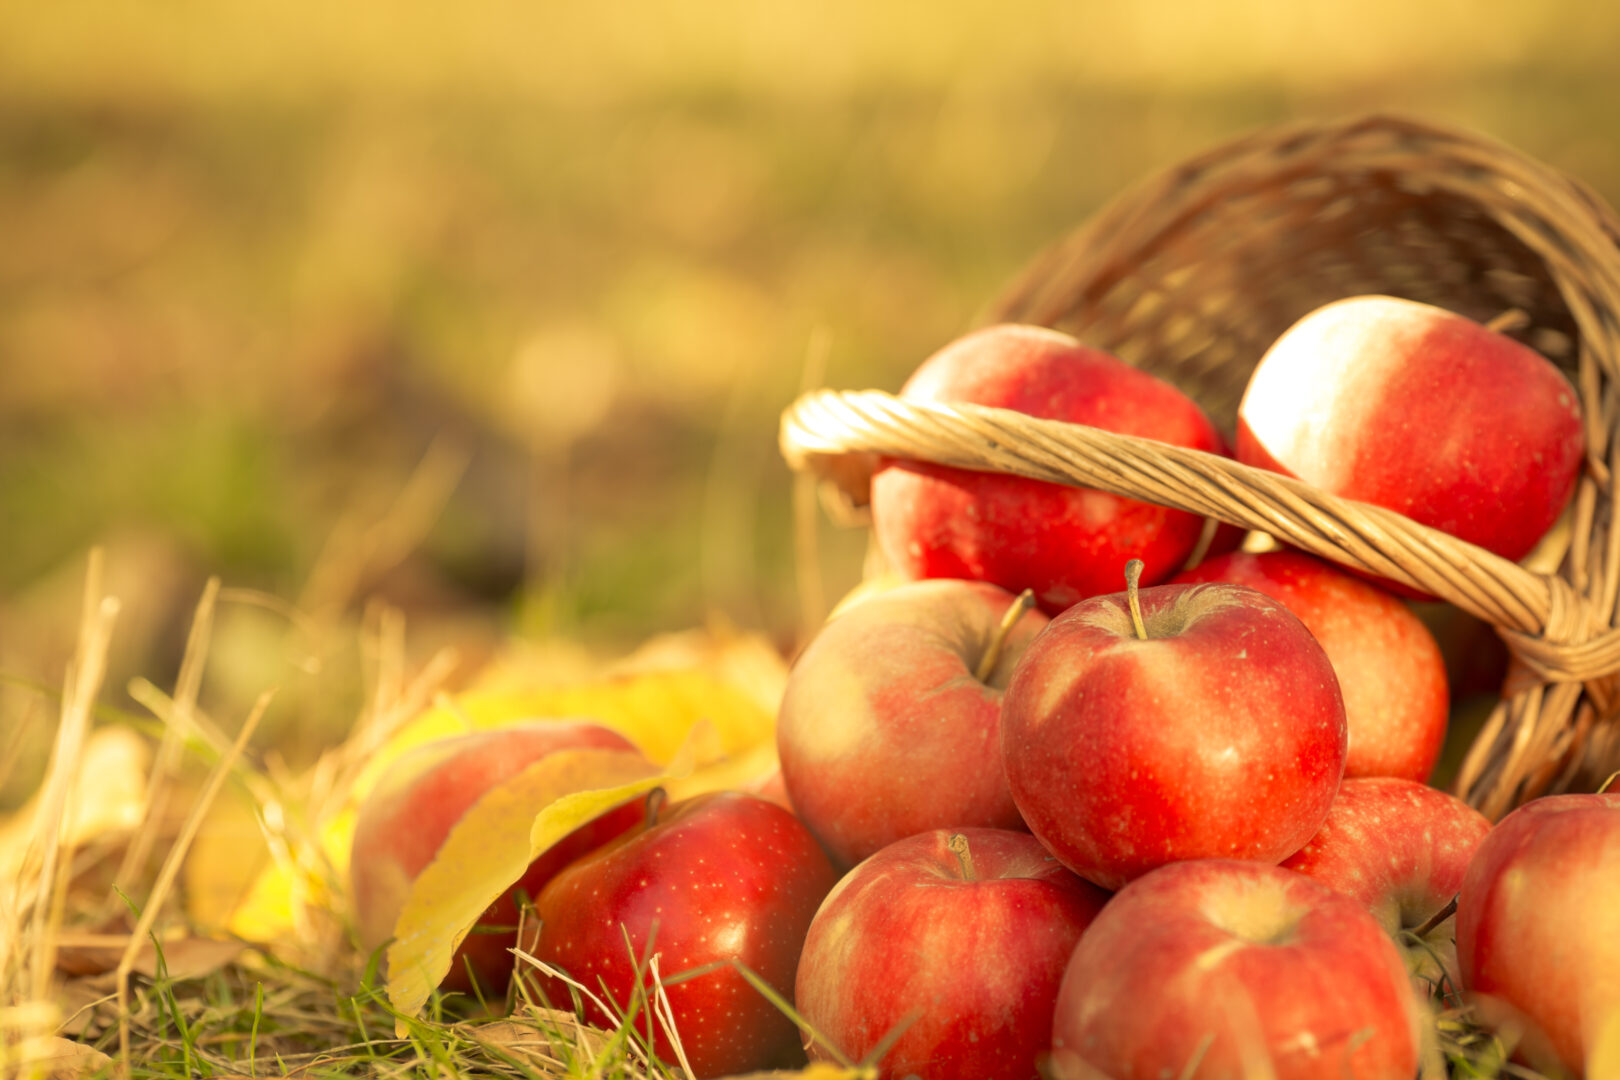 tipped over basket of apples